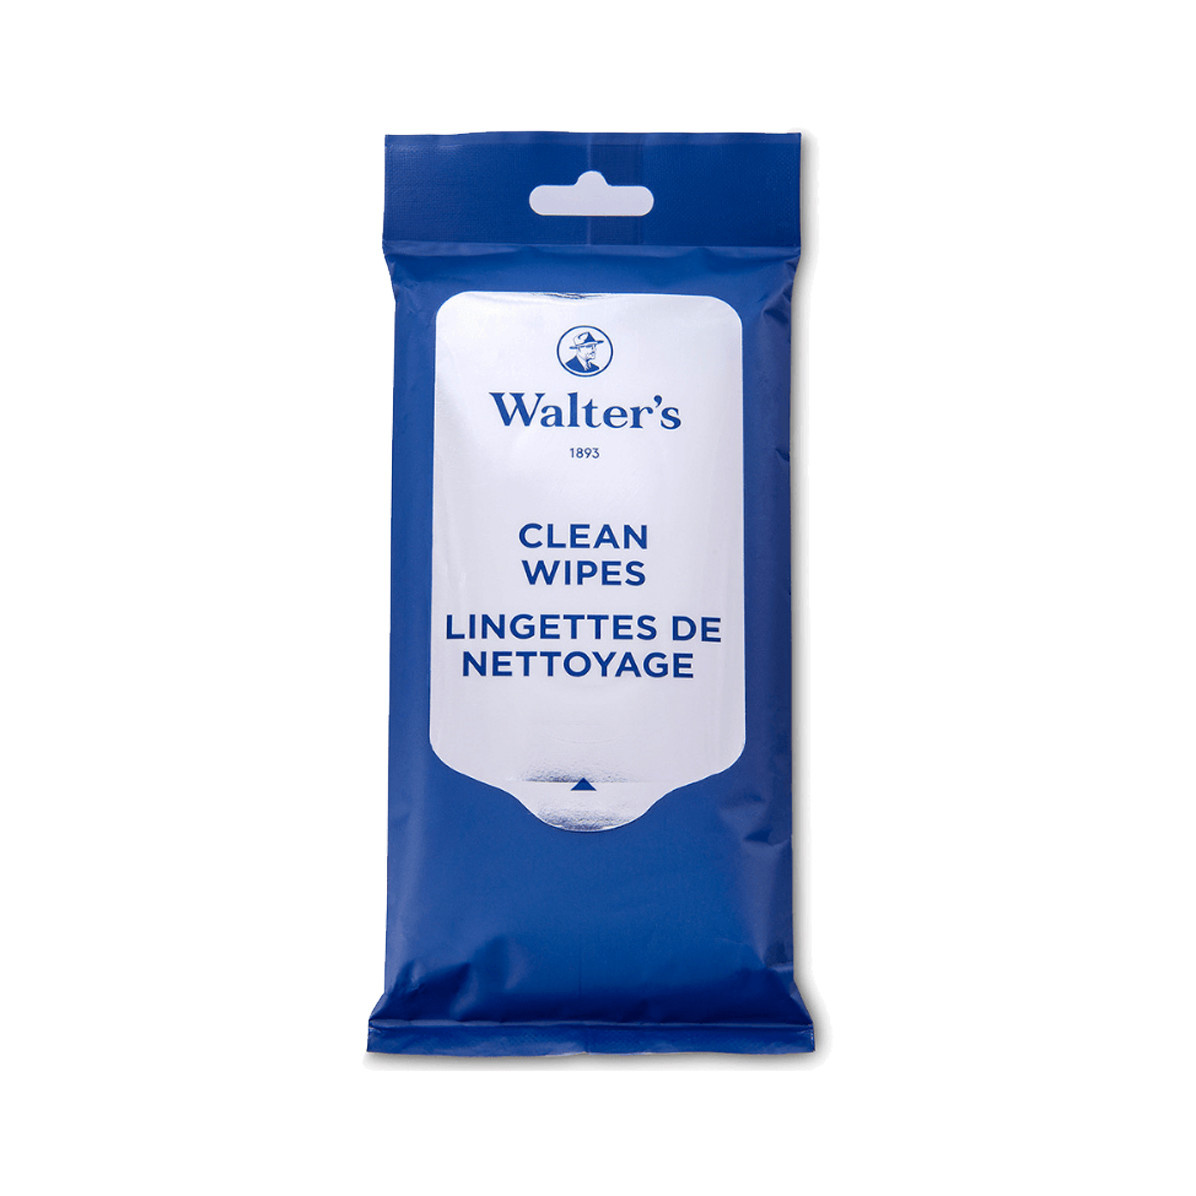 Walter's Walter's Clean Wipes